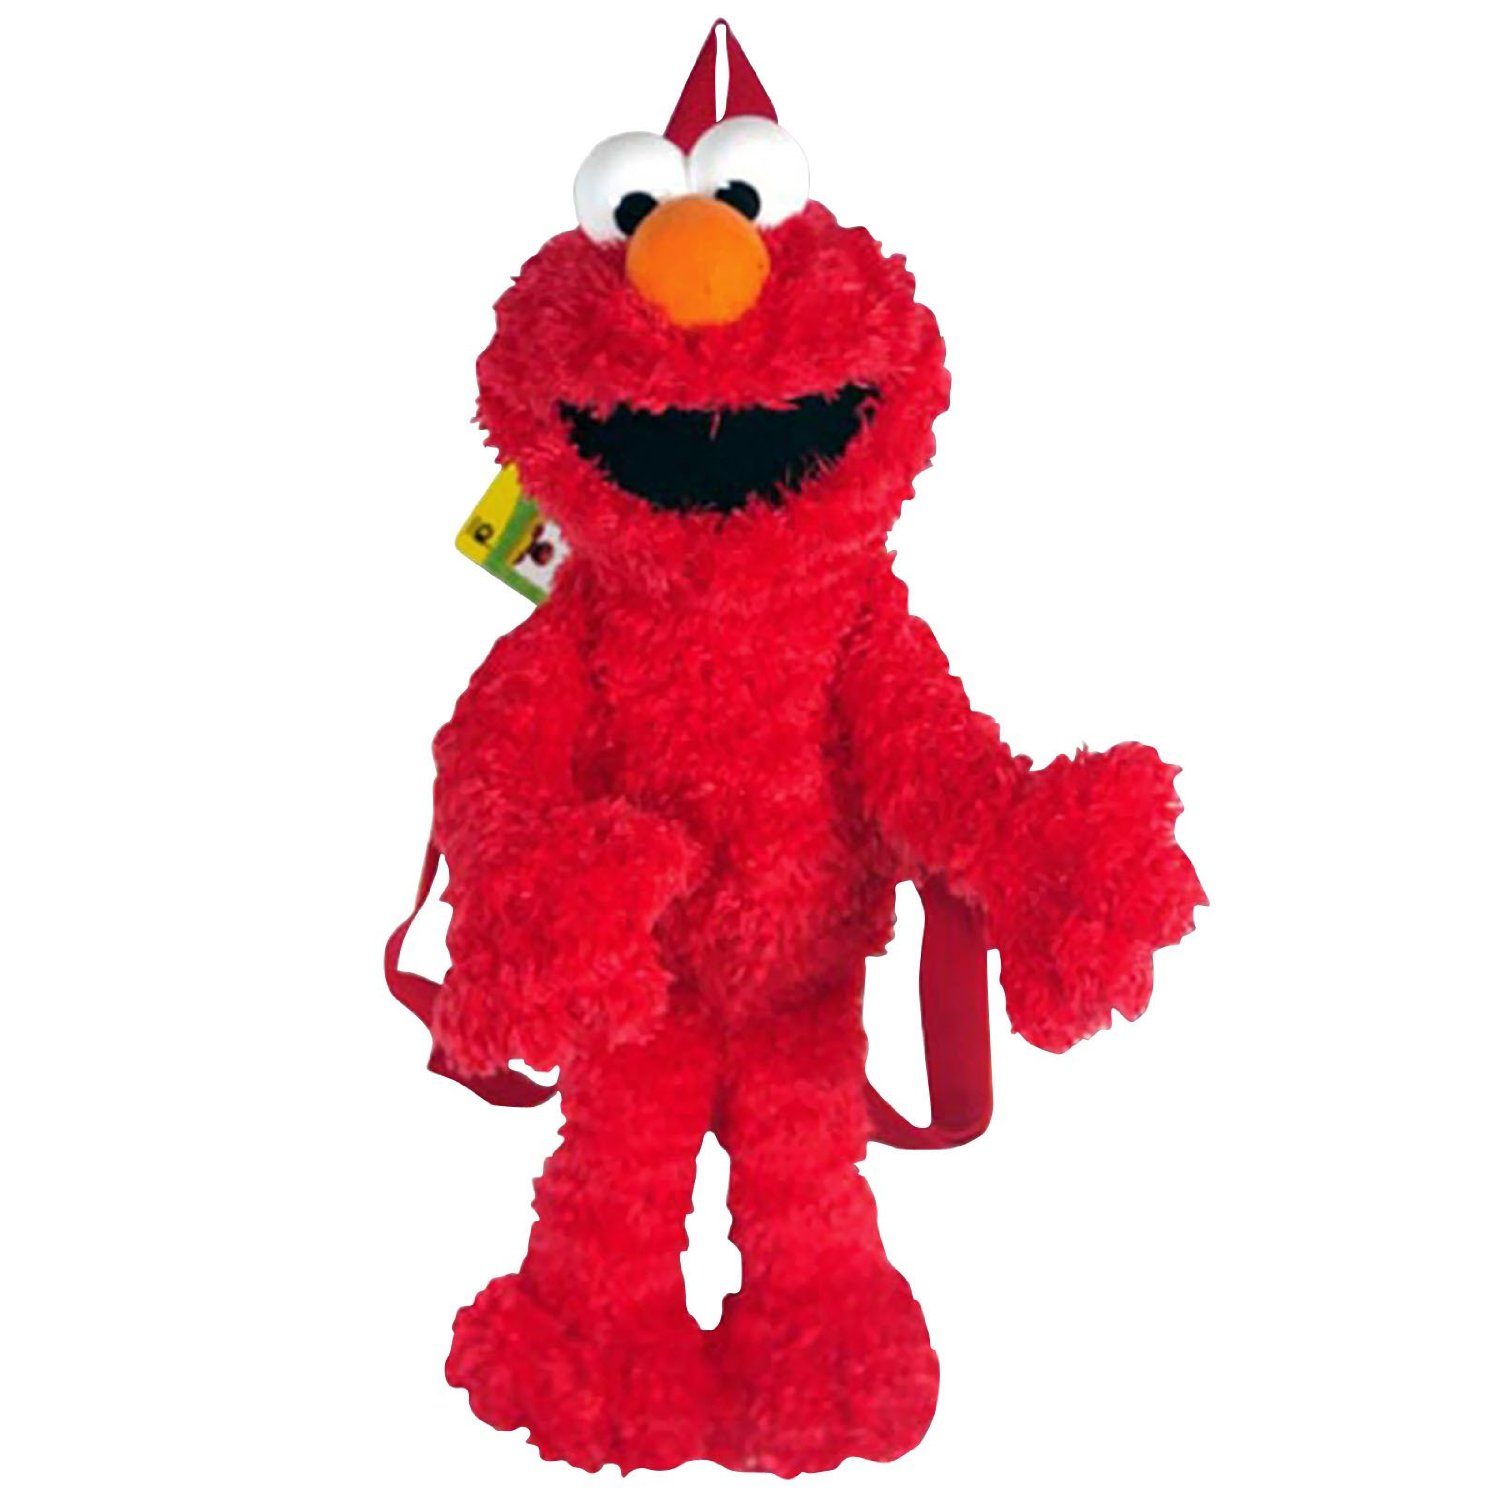 Plush Backpack - Sesame Street - Elmo Doll New Soft Doll Toys Gifts ss1000